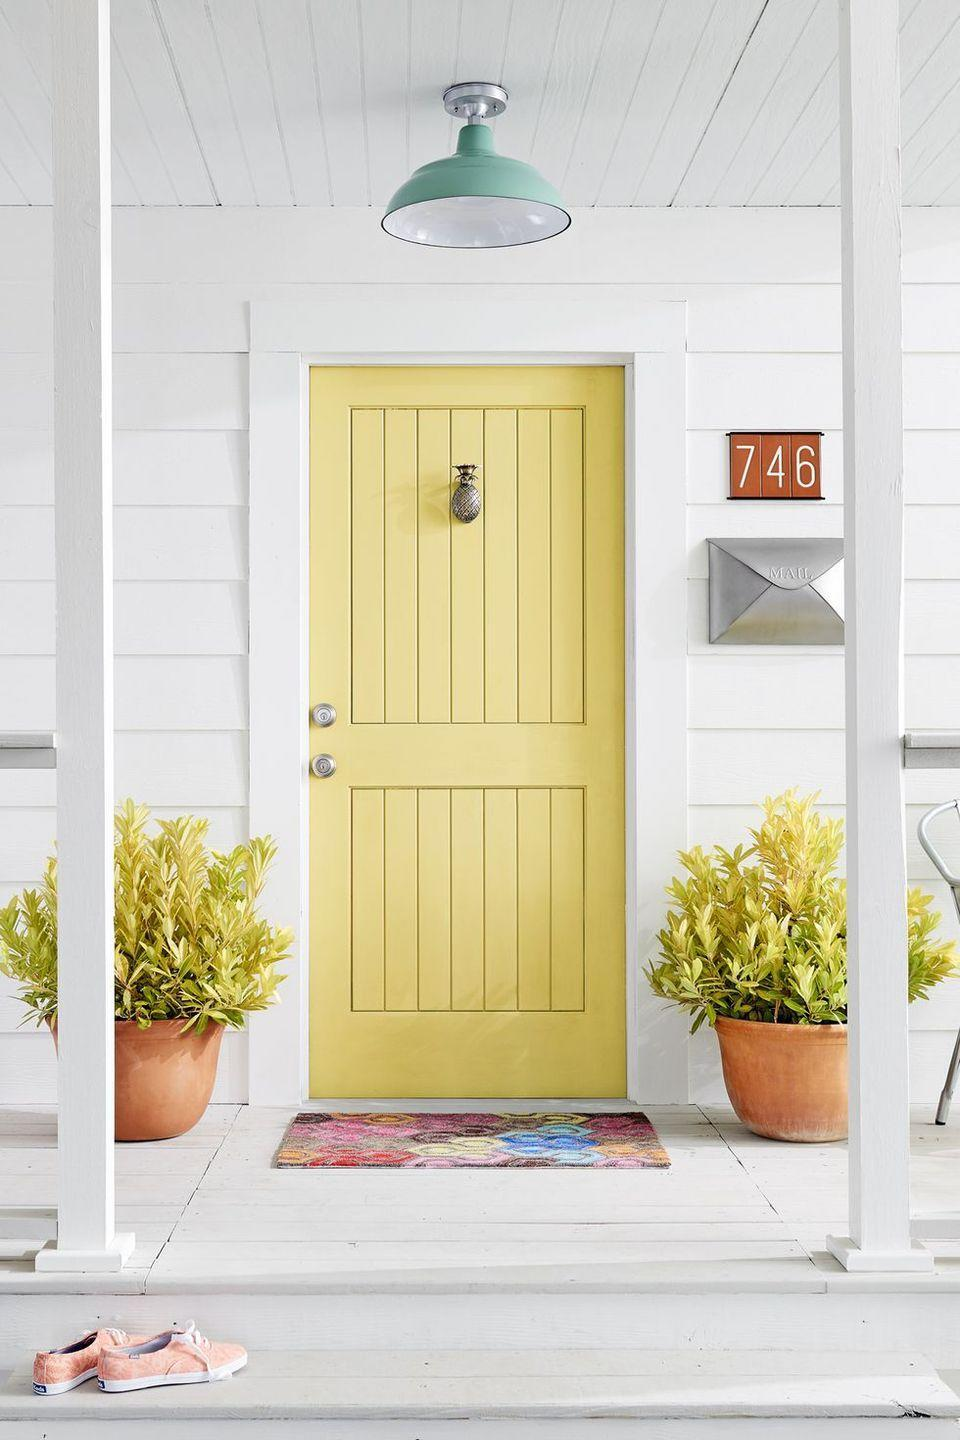 """<p>A yellow door is guaranteed to put a smile on the face of anyone who walks through it. Pair it with a minty overhead light for a retro vibe.</p><p><a class=""""link rapid-noclick-resp"""" href=""""https://www.sherwin-williams.com/homeowners/products/interior-paint-coatings/interior-paint?selectedColorNumber=SW6908"""" rel=""""nofollow noopener"""" target=""""_blank"""" data-ylk=""""slk:SHOP YELLOW PAINT"""">SHOP YELLOW PAINT</a></p>"""